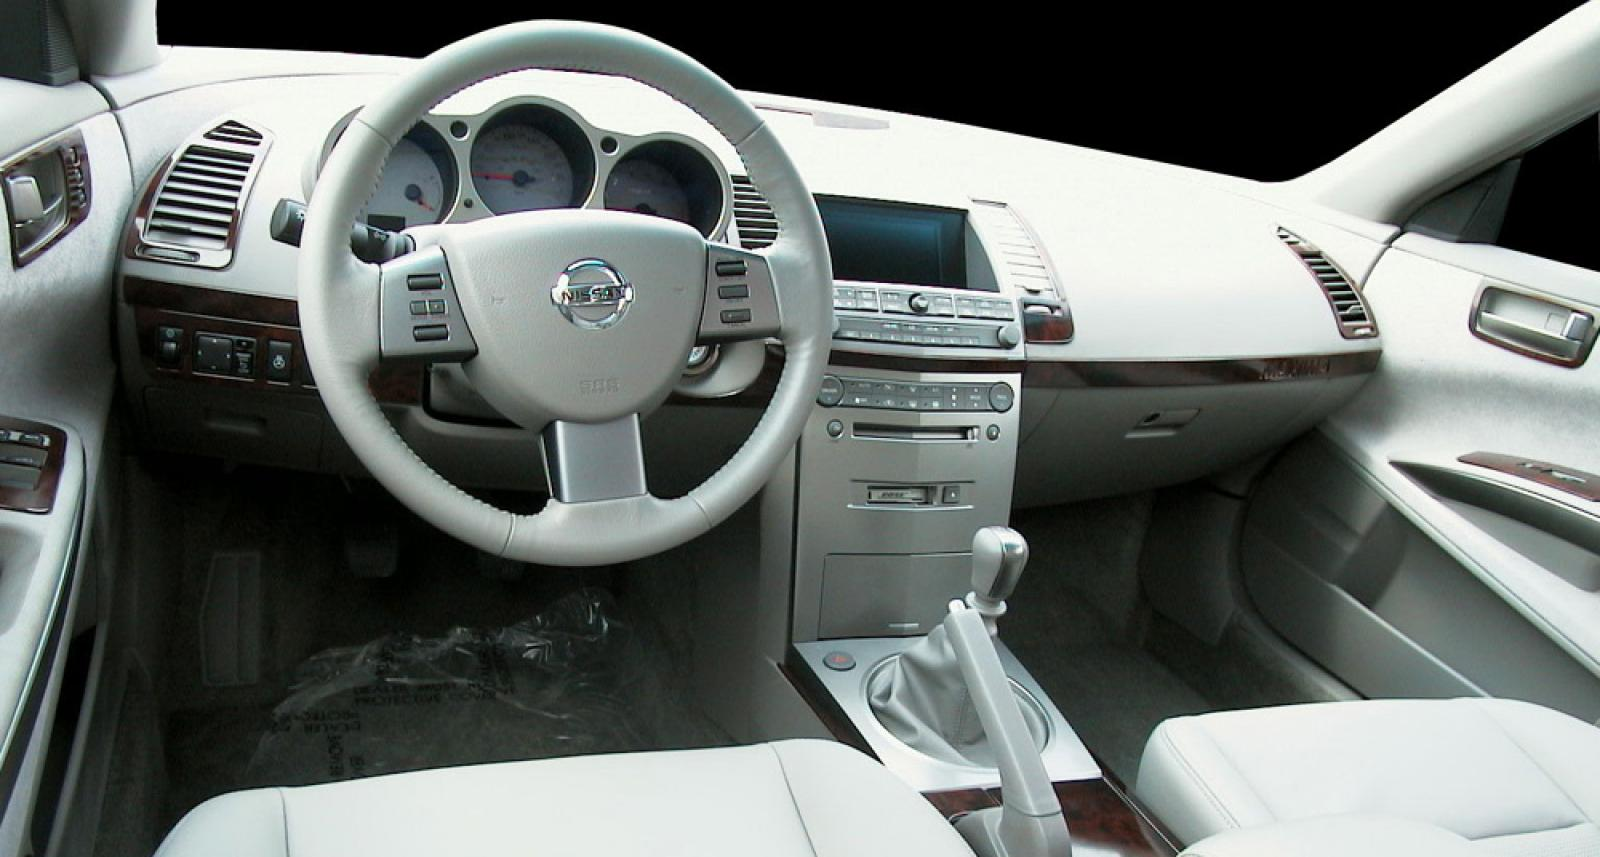 nissan maxima 2004 manual transmission